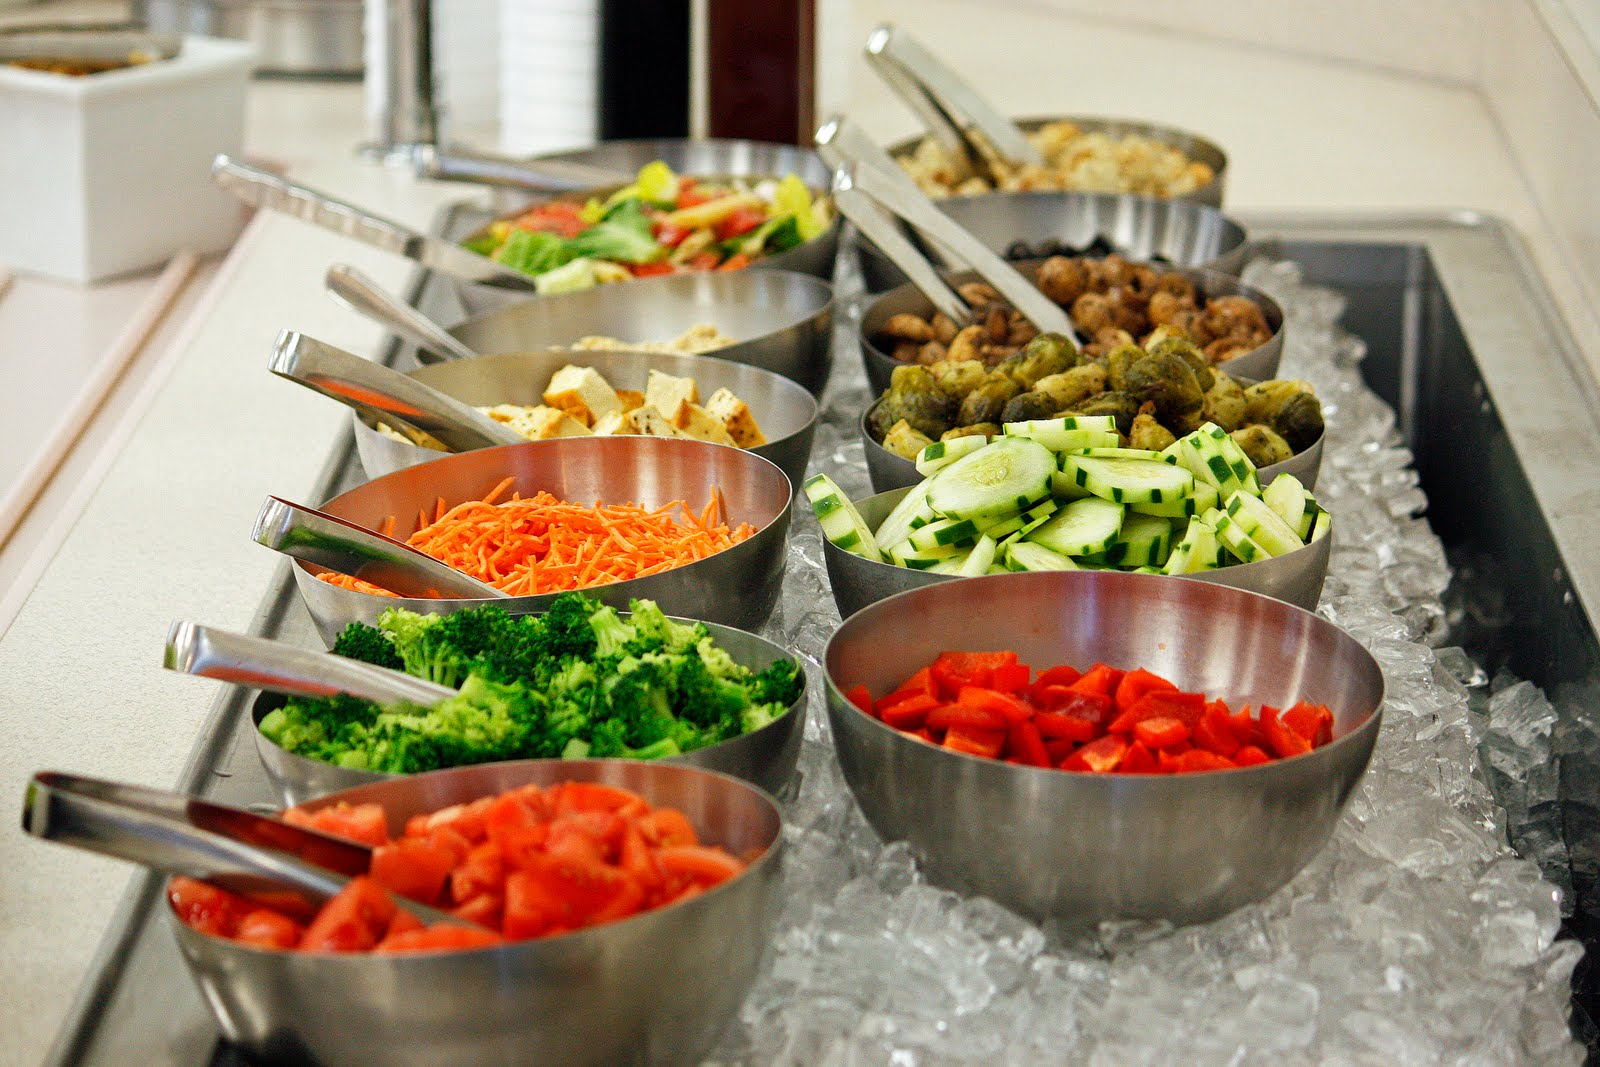 salad bar ideas for a party images